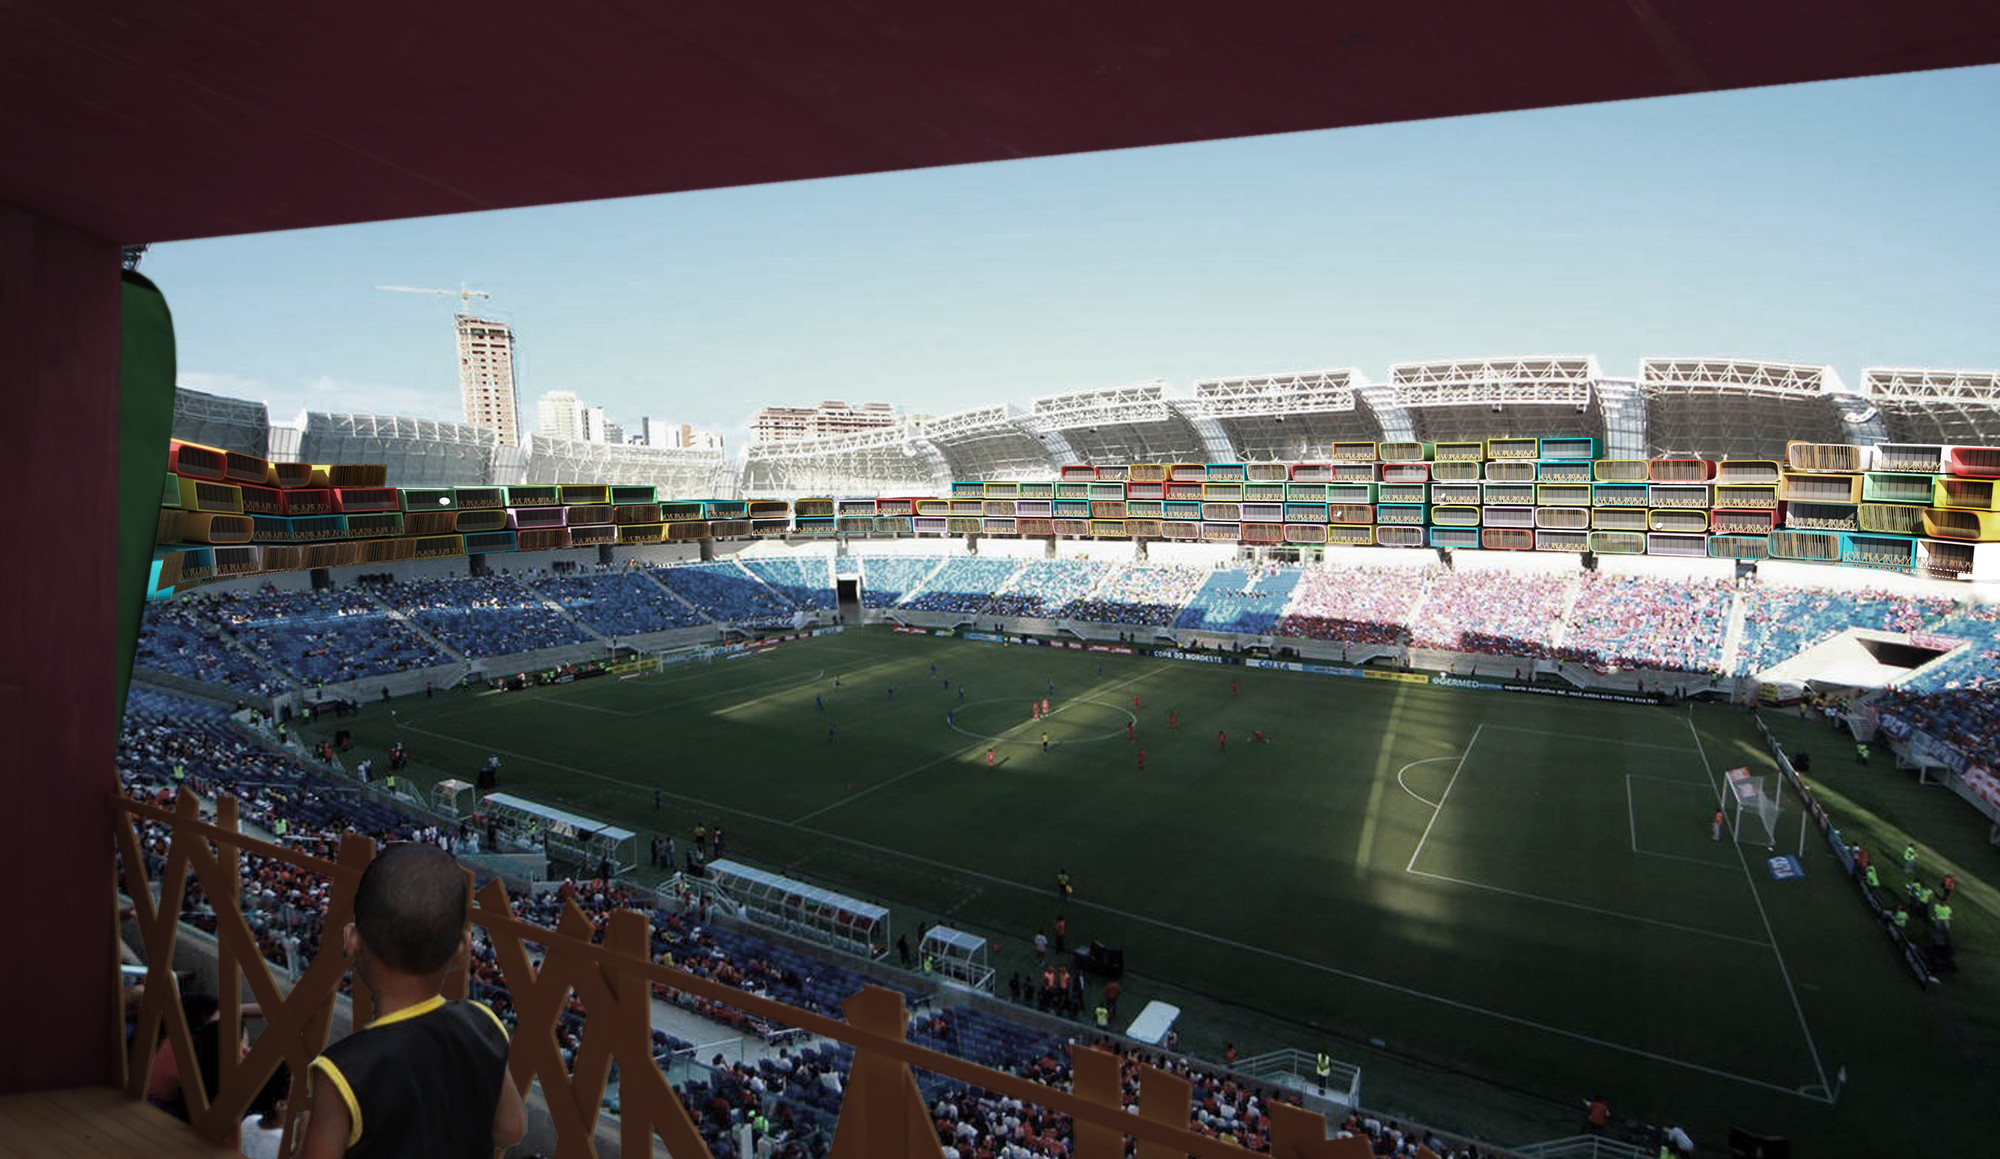 Render of the Arena das Dunas, based on a photograph from copa2014.gov.br